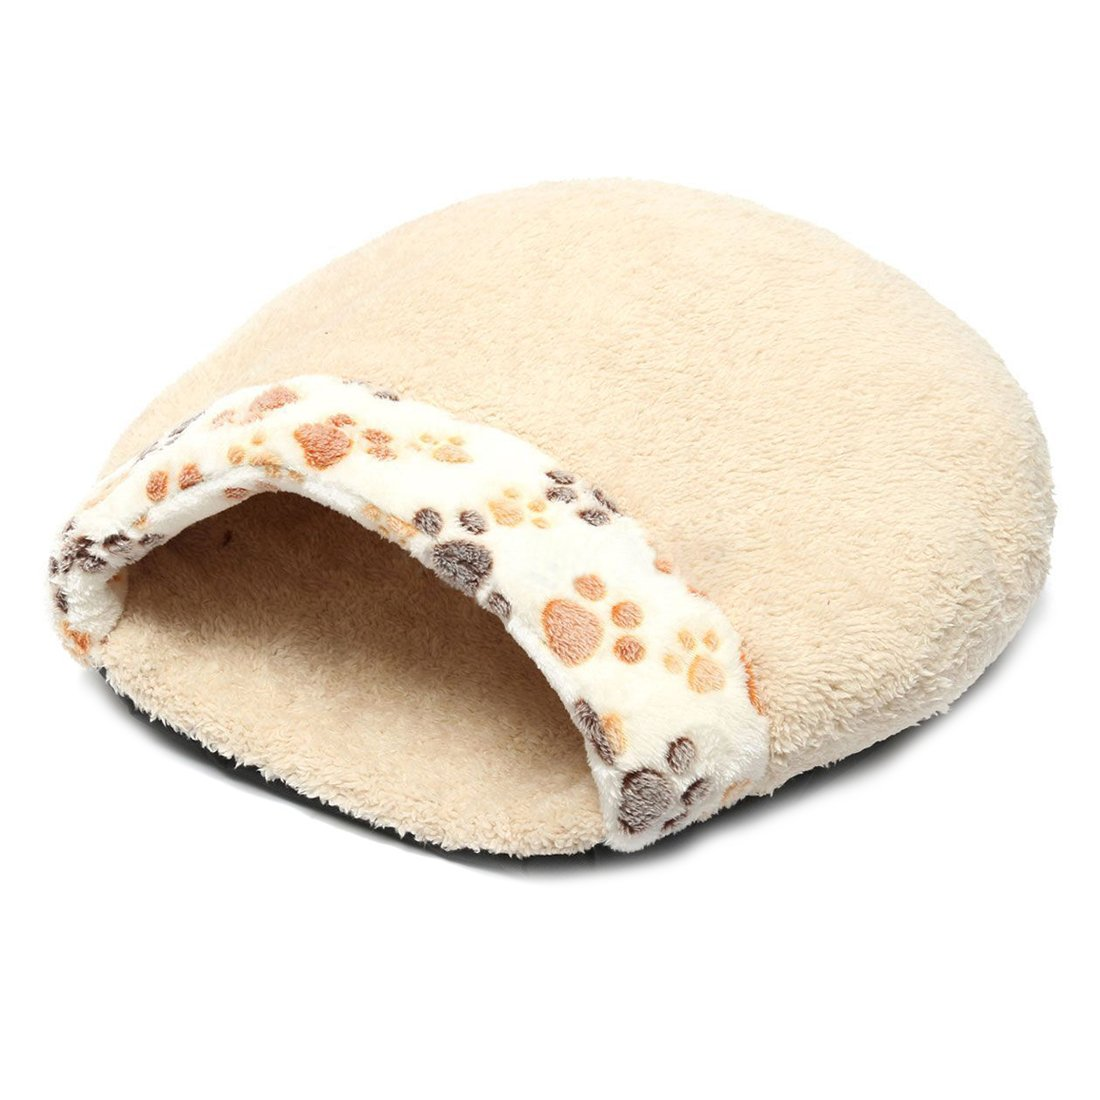 SODIAL(R) Pet Dog Cat Kitten Puppy Soft Plush Bed Warm Cave House Mat Slippers Snug creamy-white S durable modeling